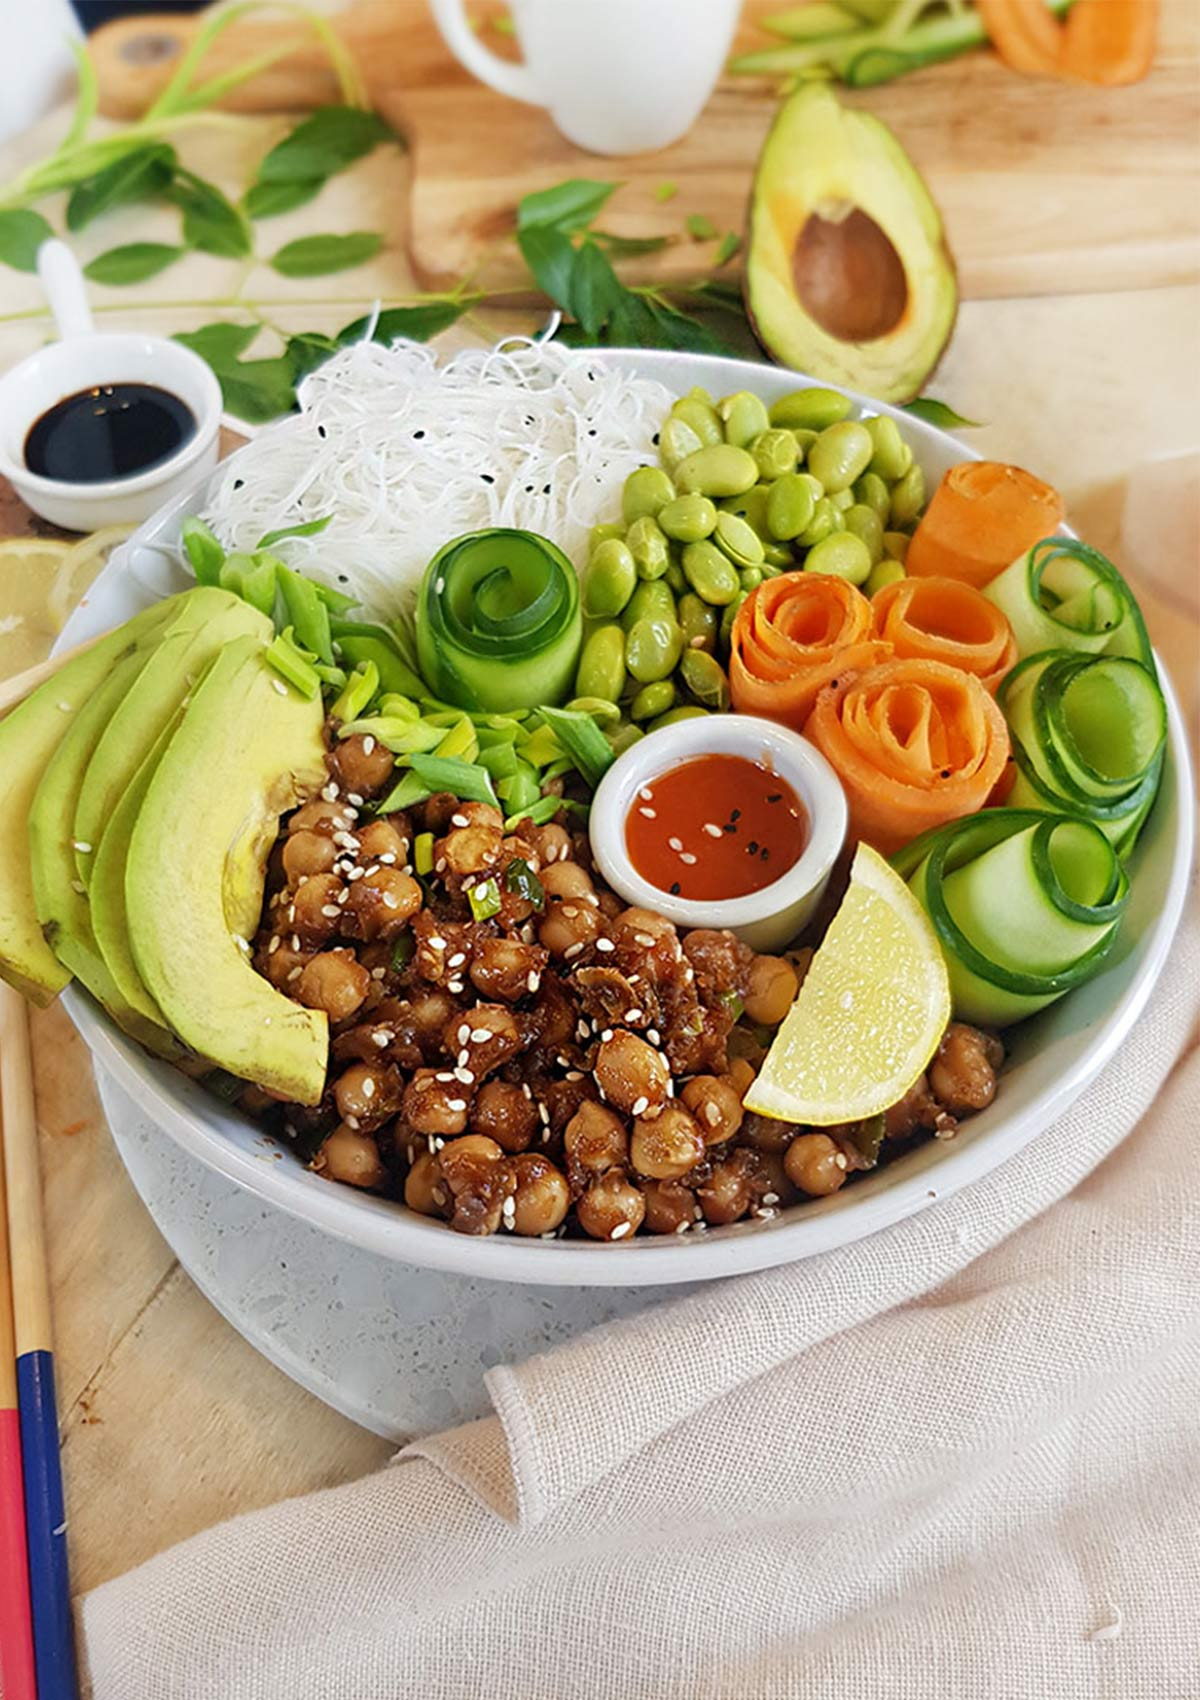 poke bowl of chickpeas with carrot and cucumber rolls , edamame , avocado and rice noodles.